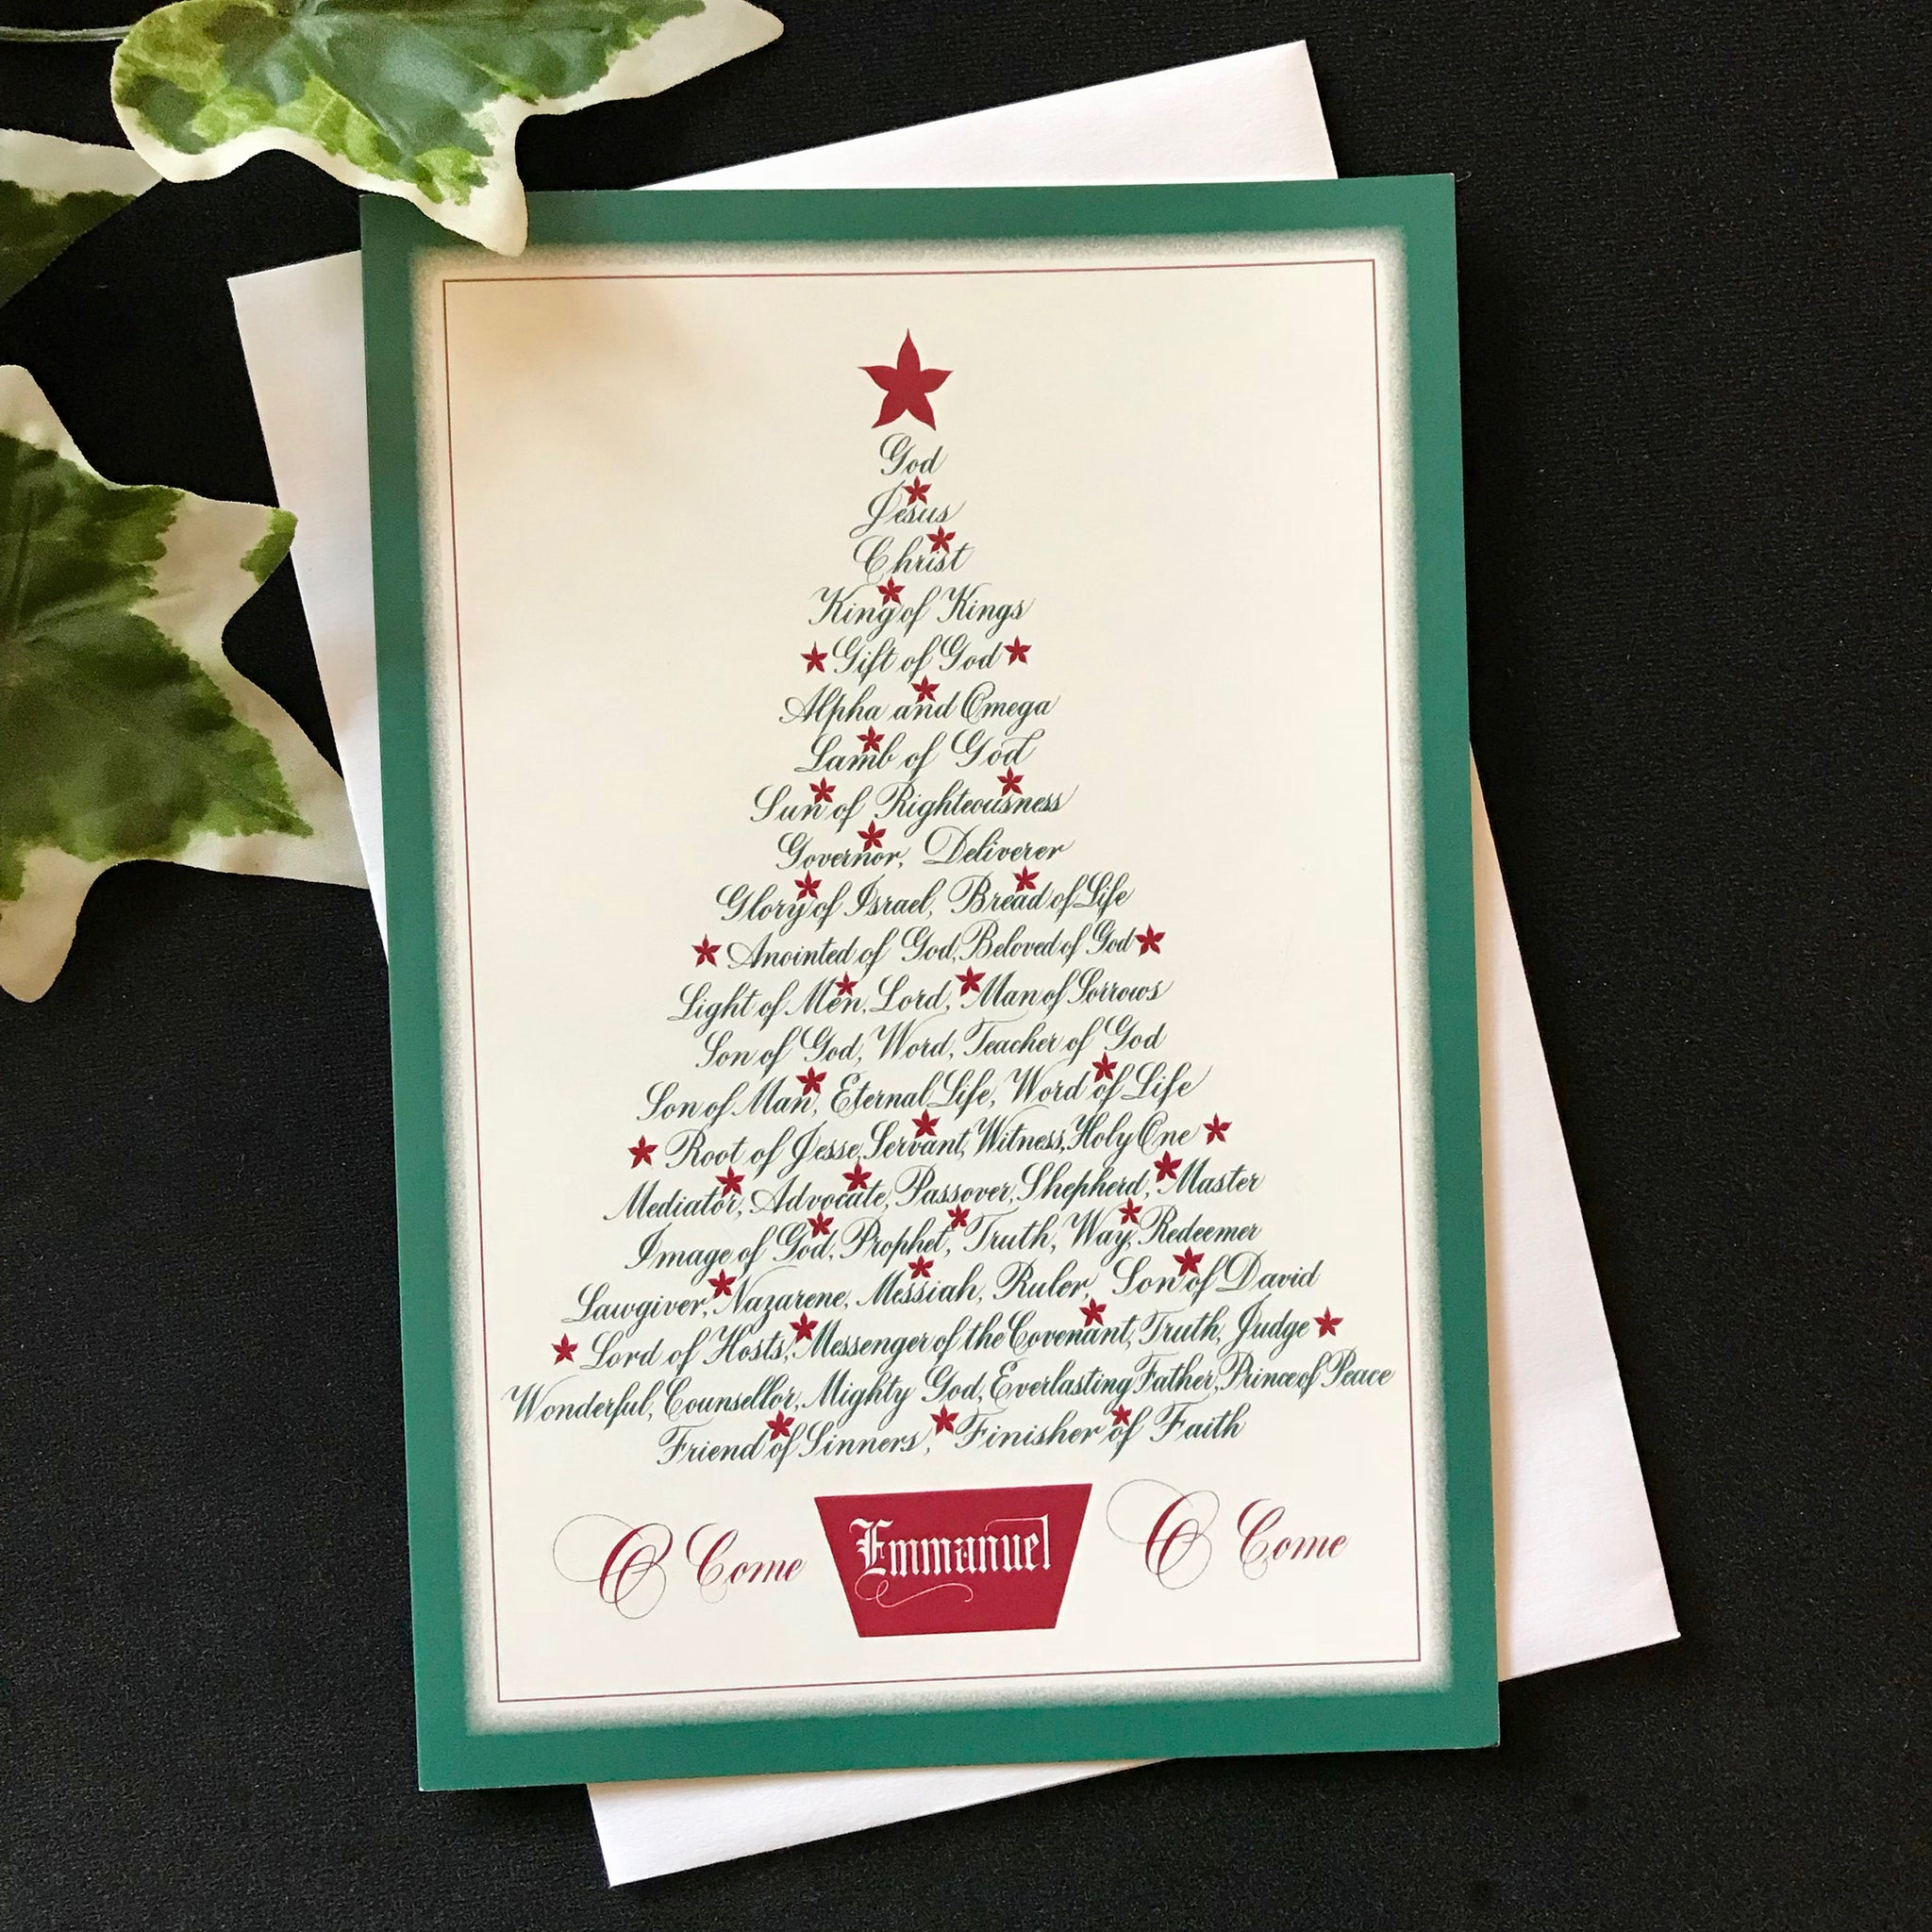 Christmas Tree Names of Jesus card God Jesus Christ King of Kings Clifford Mansley calligraphy